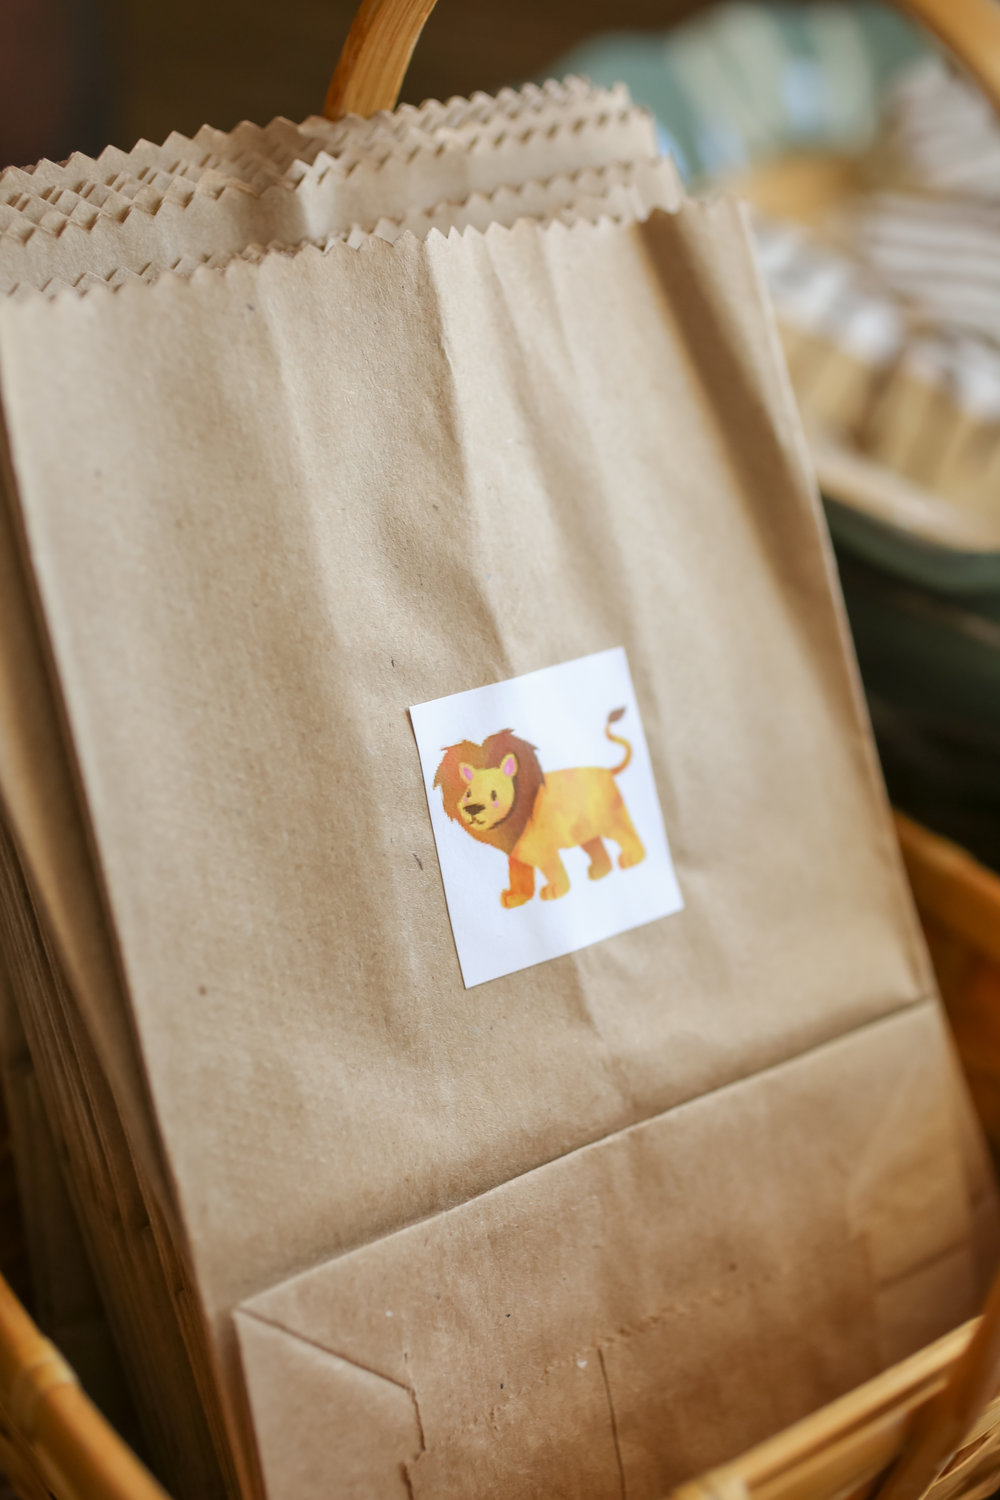 Jungle themed kraft paper to-go bags were provided to guests.